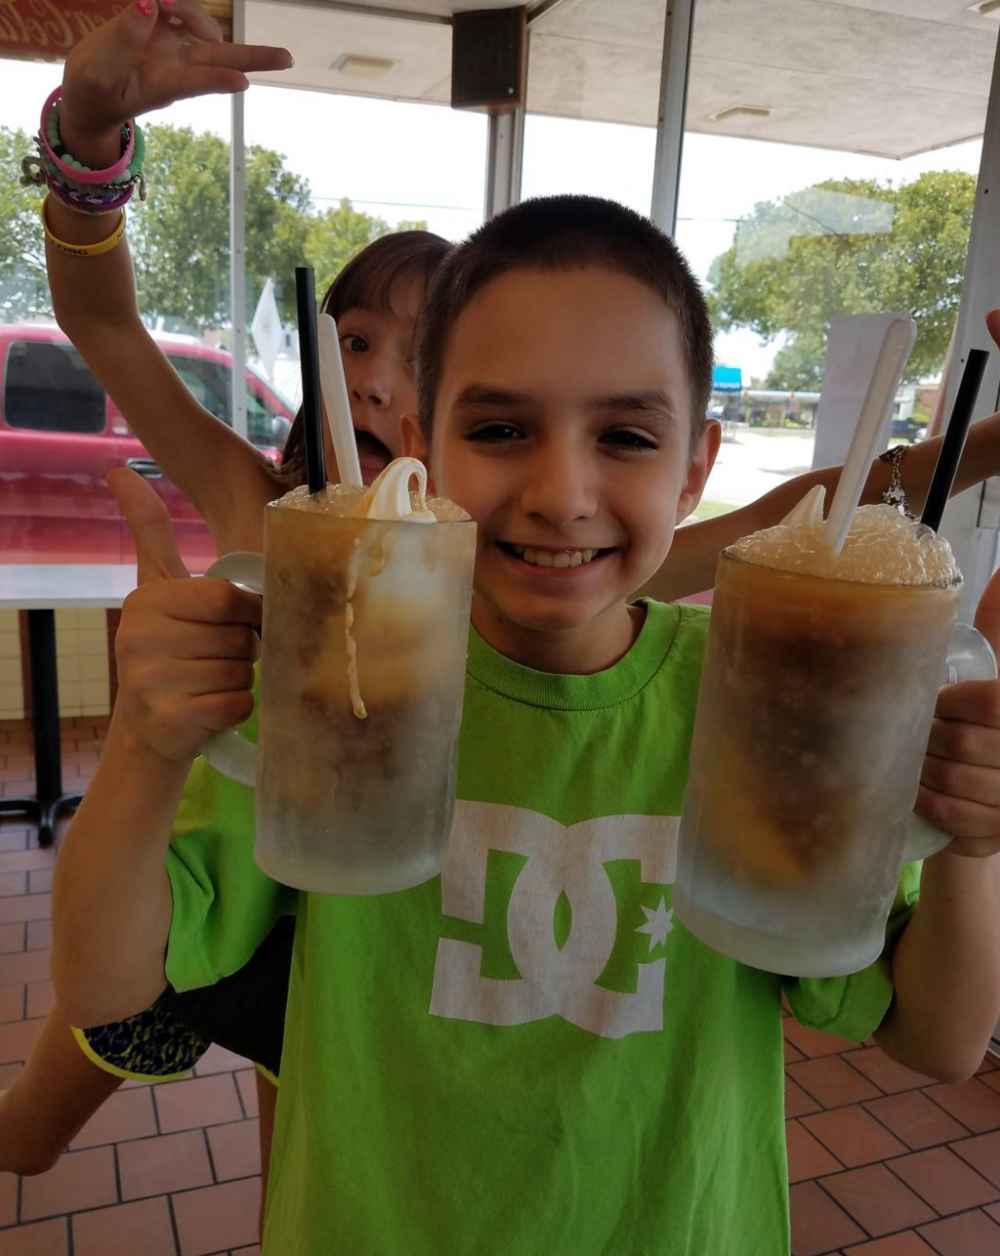 Root beer floats at Mr. Frosty. Photo by @gigi_born.